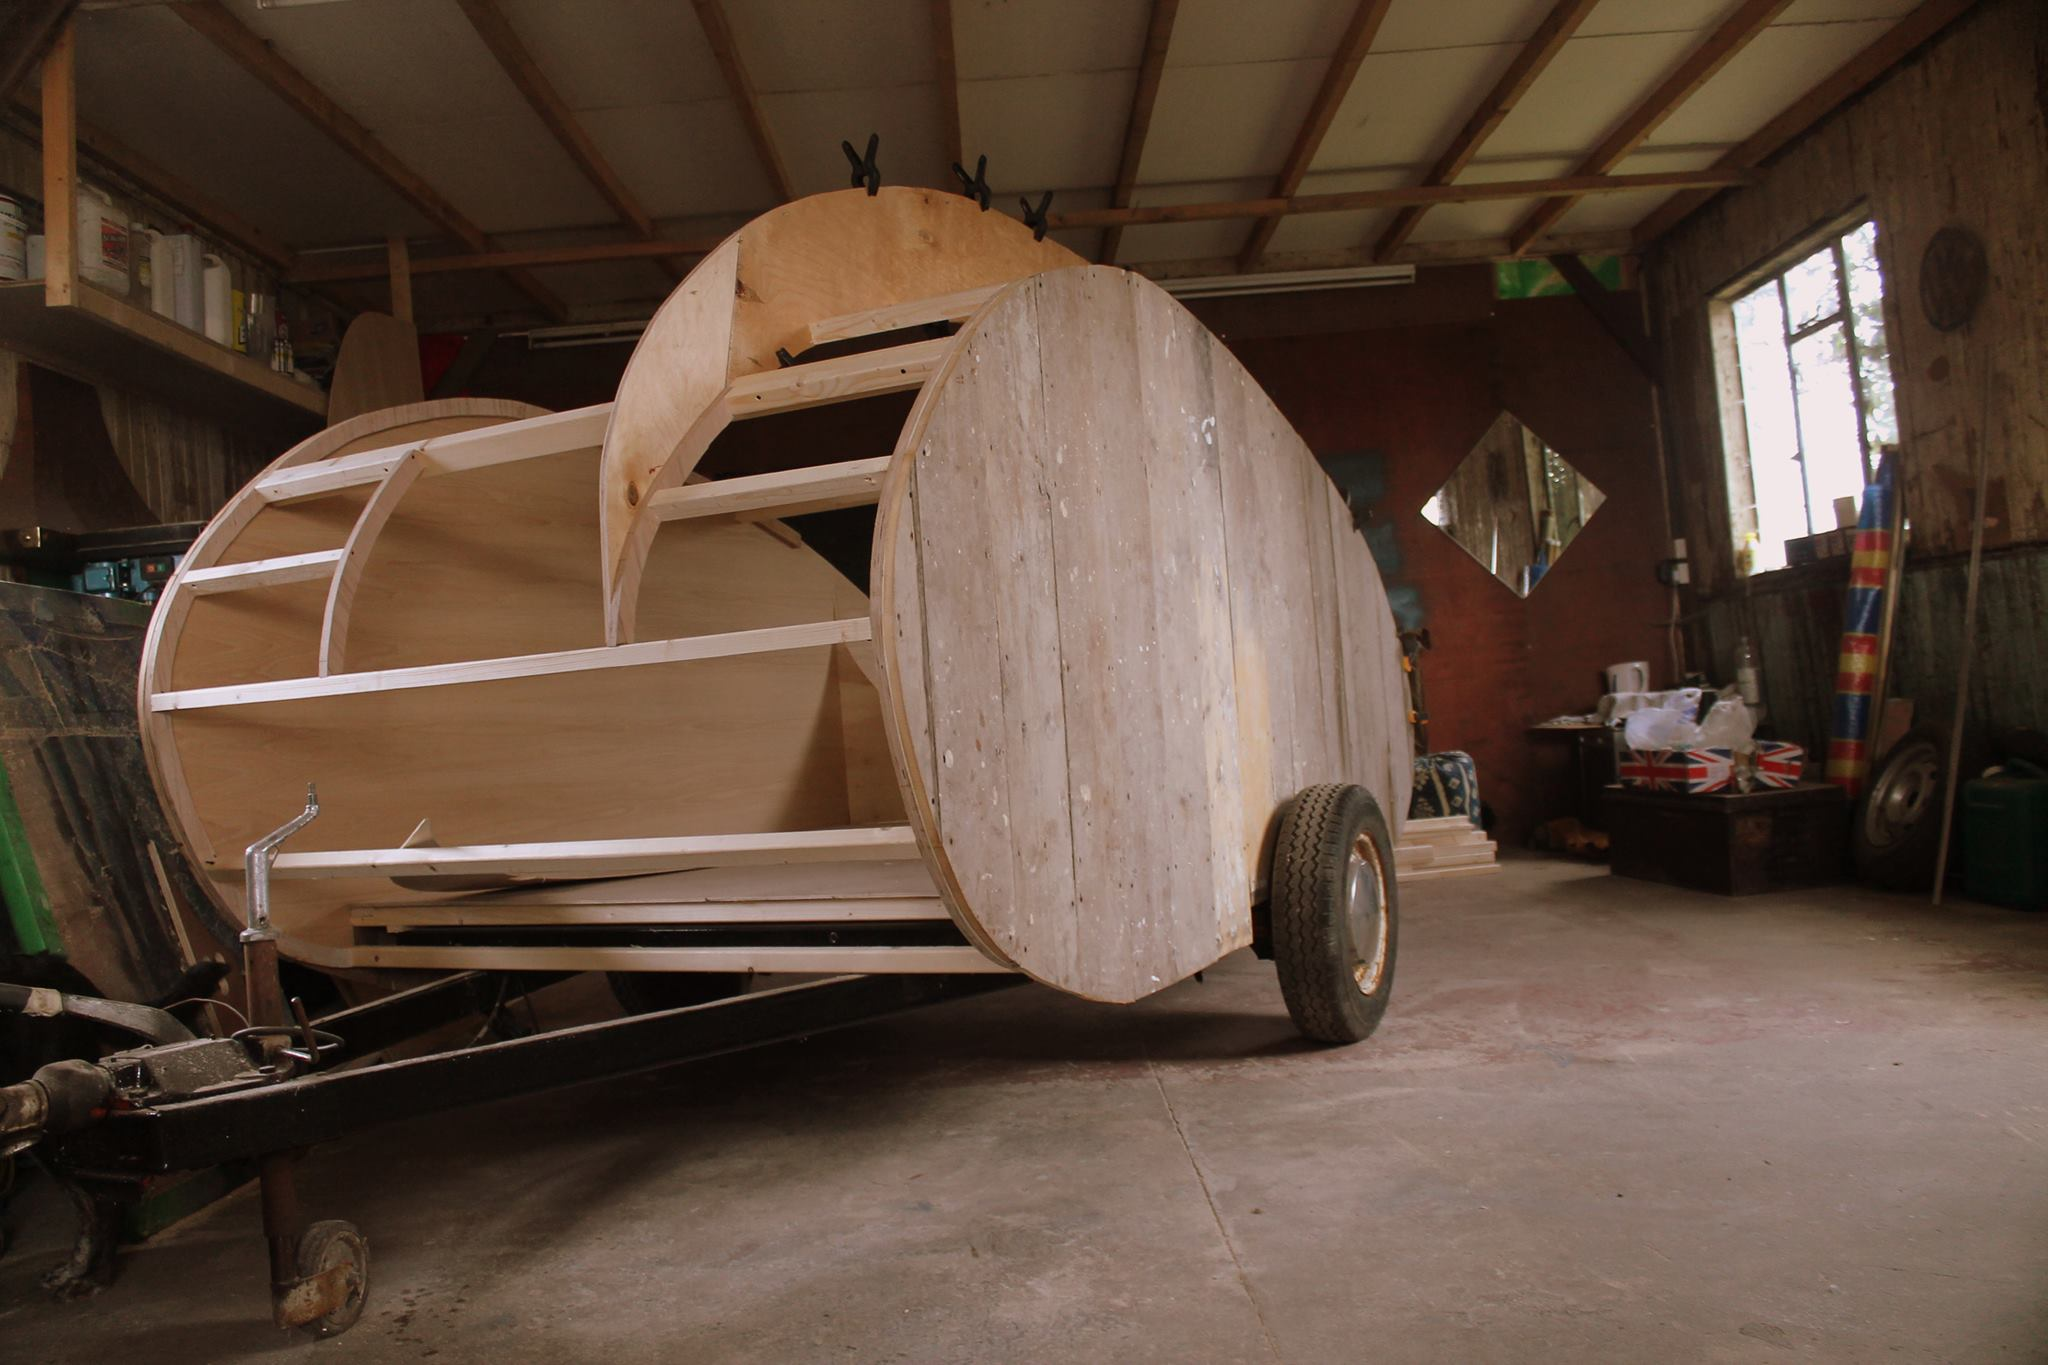 And Now, a DIY Steampunk Trailer fit for Travelling the